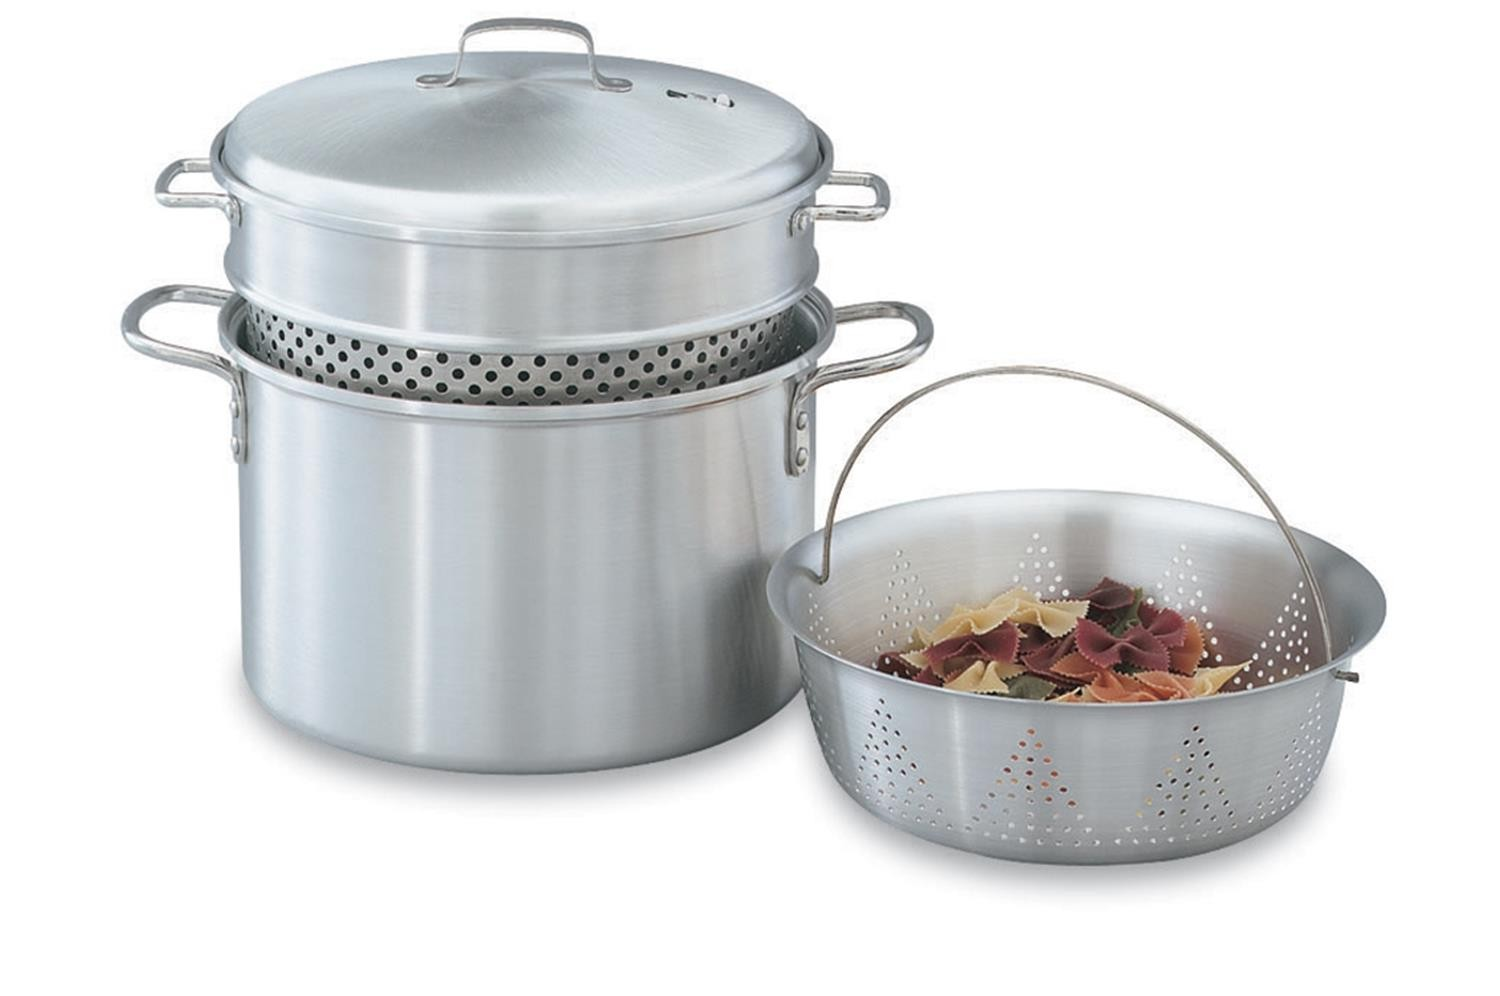 Vollrath 68126 Aluminum Pasta Cooker / Vegetable Steamer Set 8 Qt.